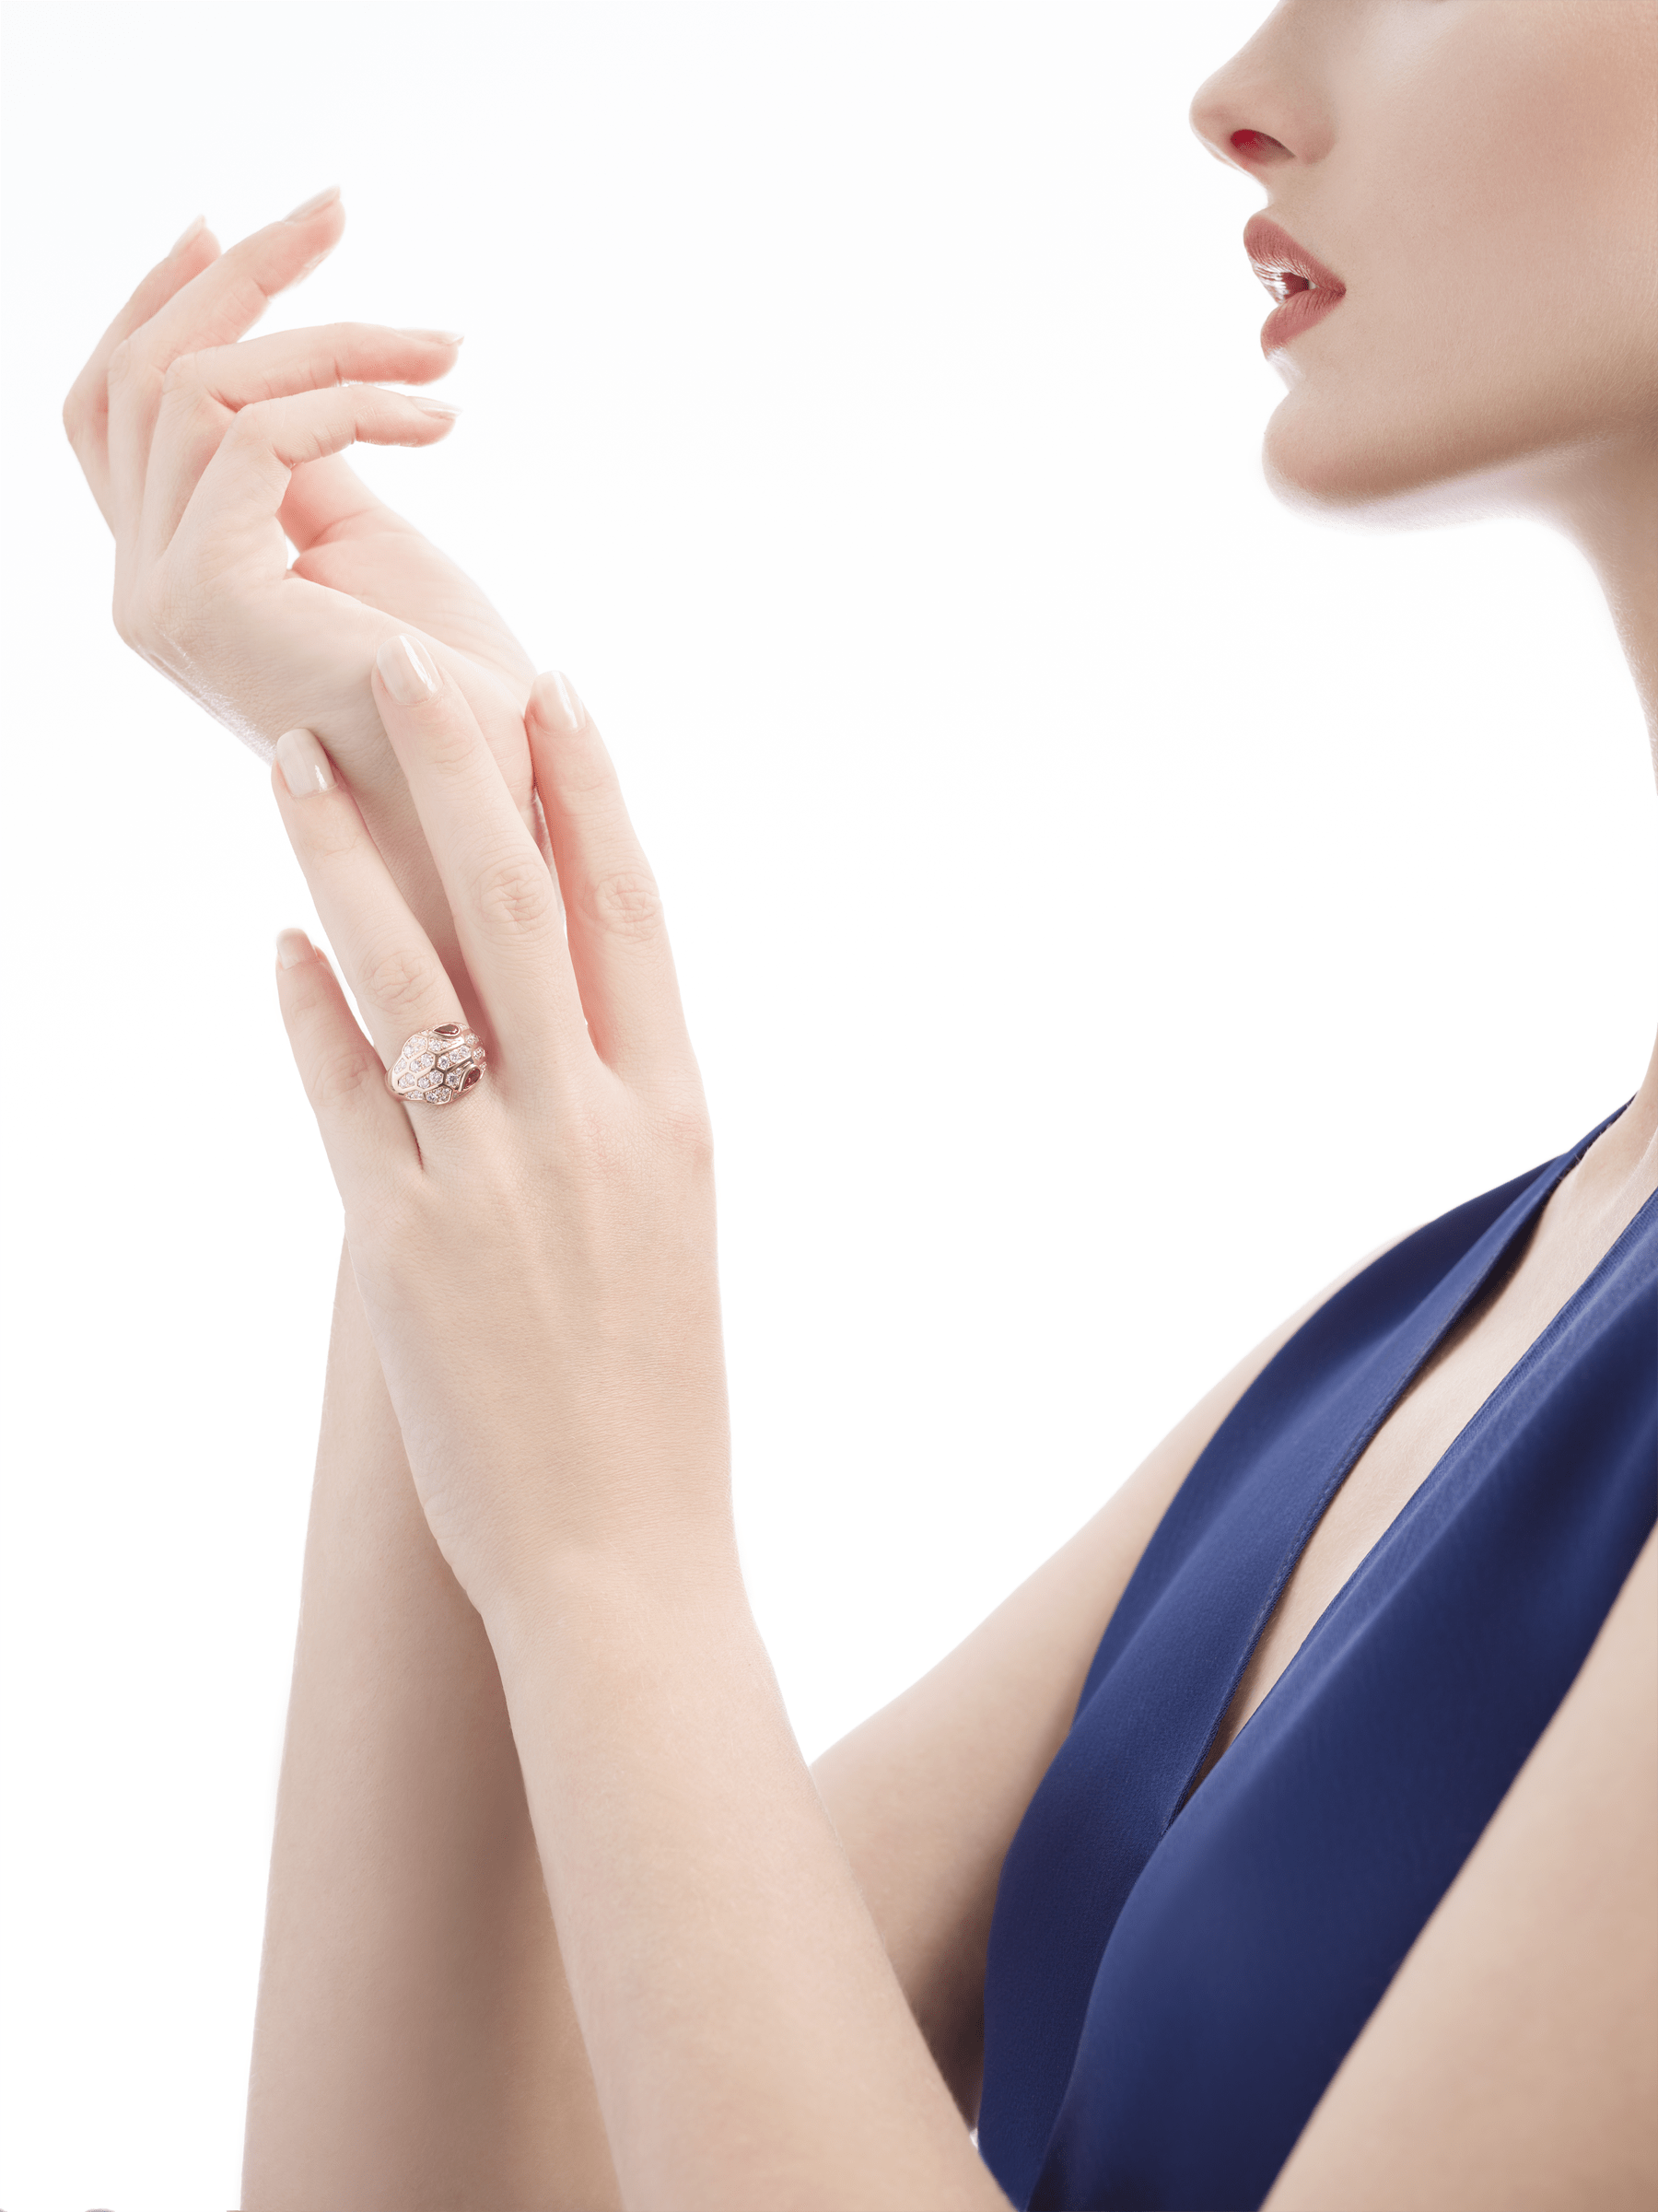 Serpenti ring in 18 kt rose gold, set with rubellite eyes and full pavé diamonds. AN857806 image 3